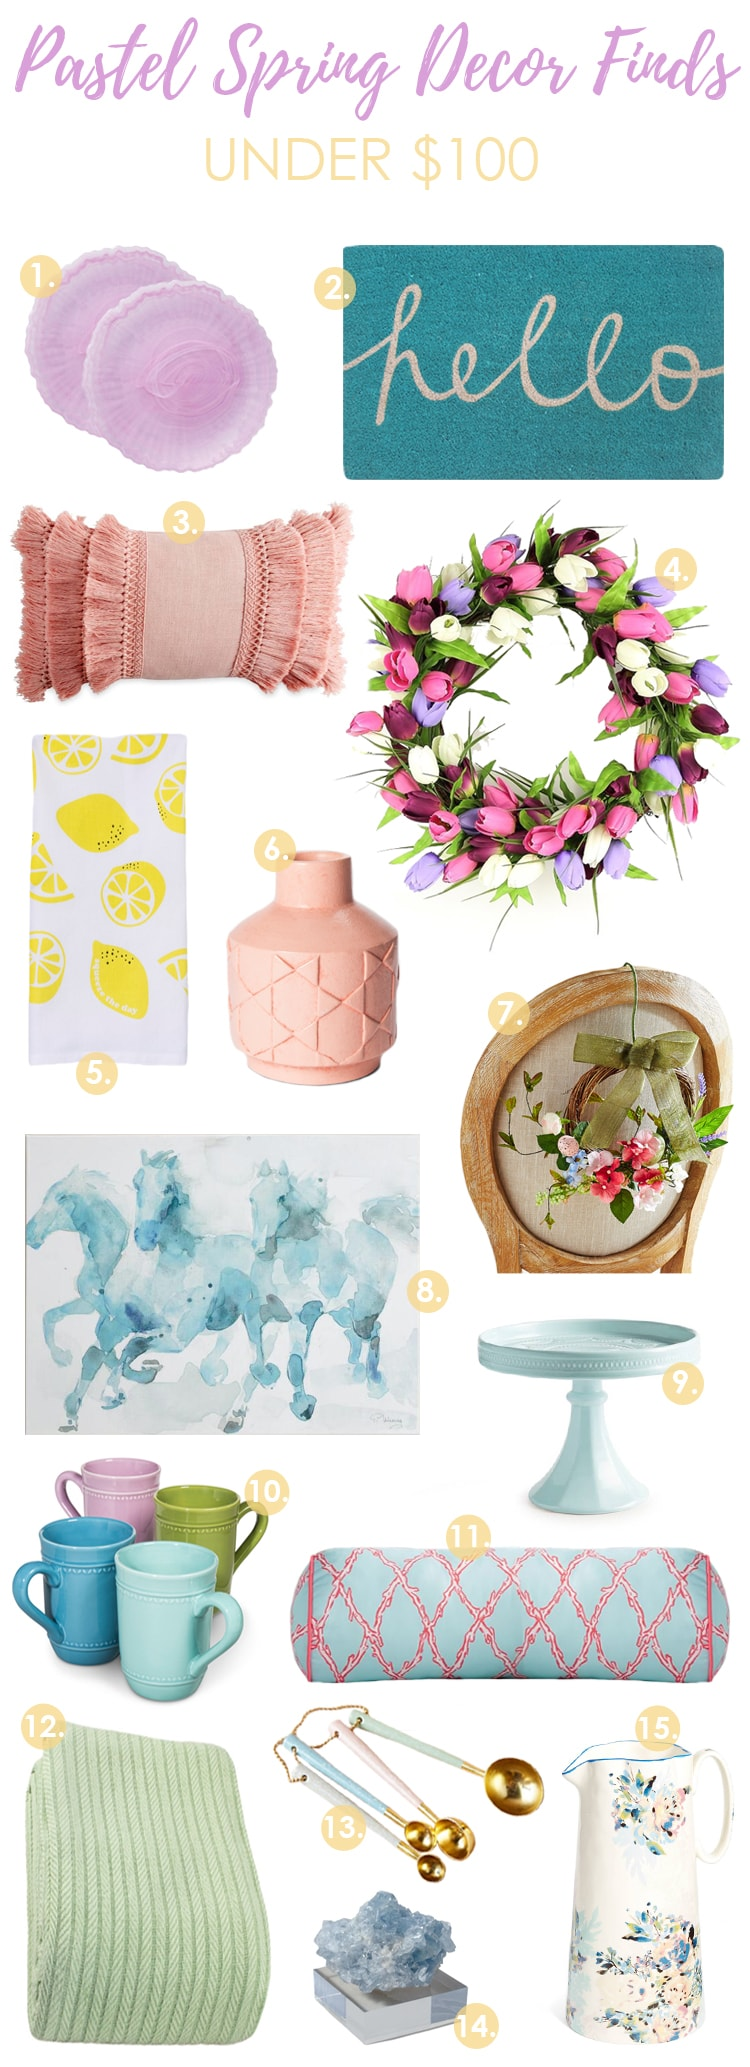 Love all these pastel spring home decor finds to freshen my home this season! #spring #springhomedecor #springdecorating